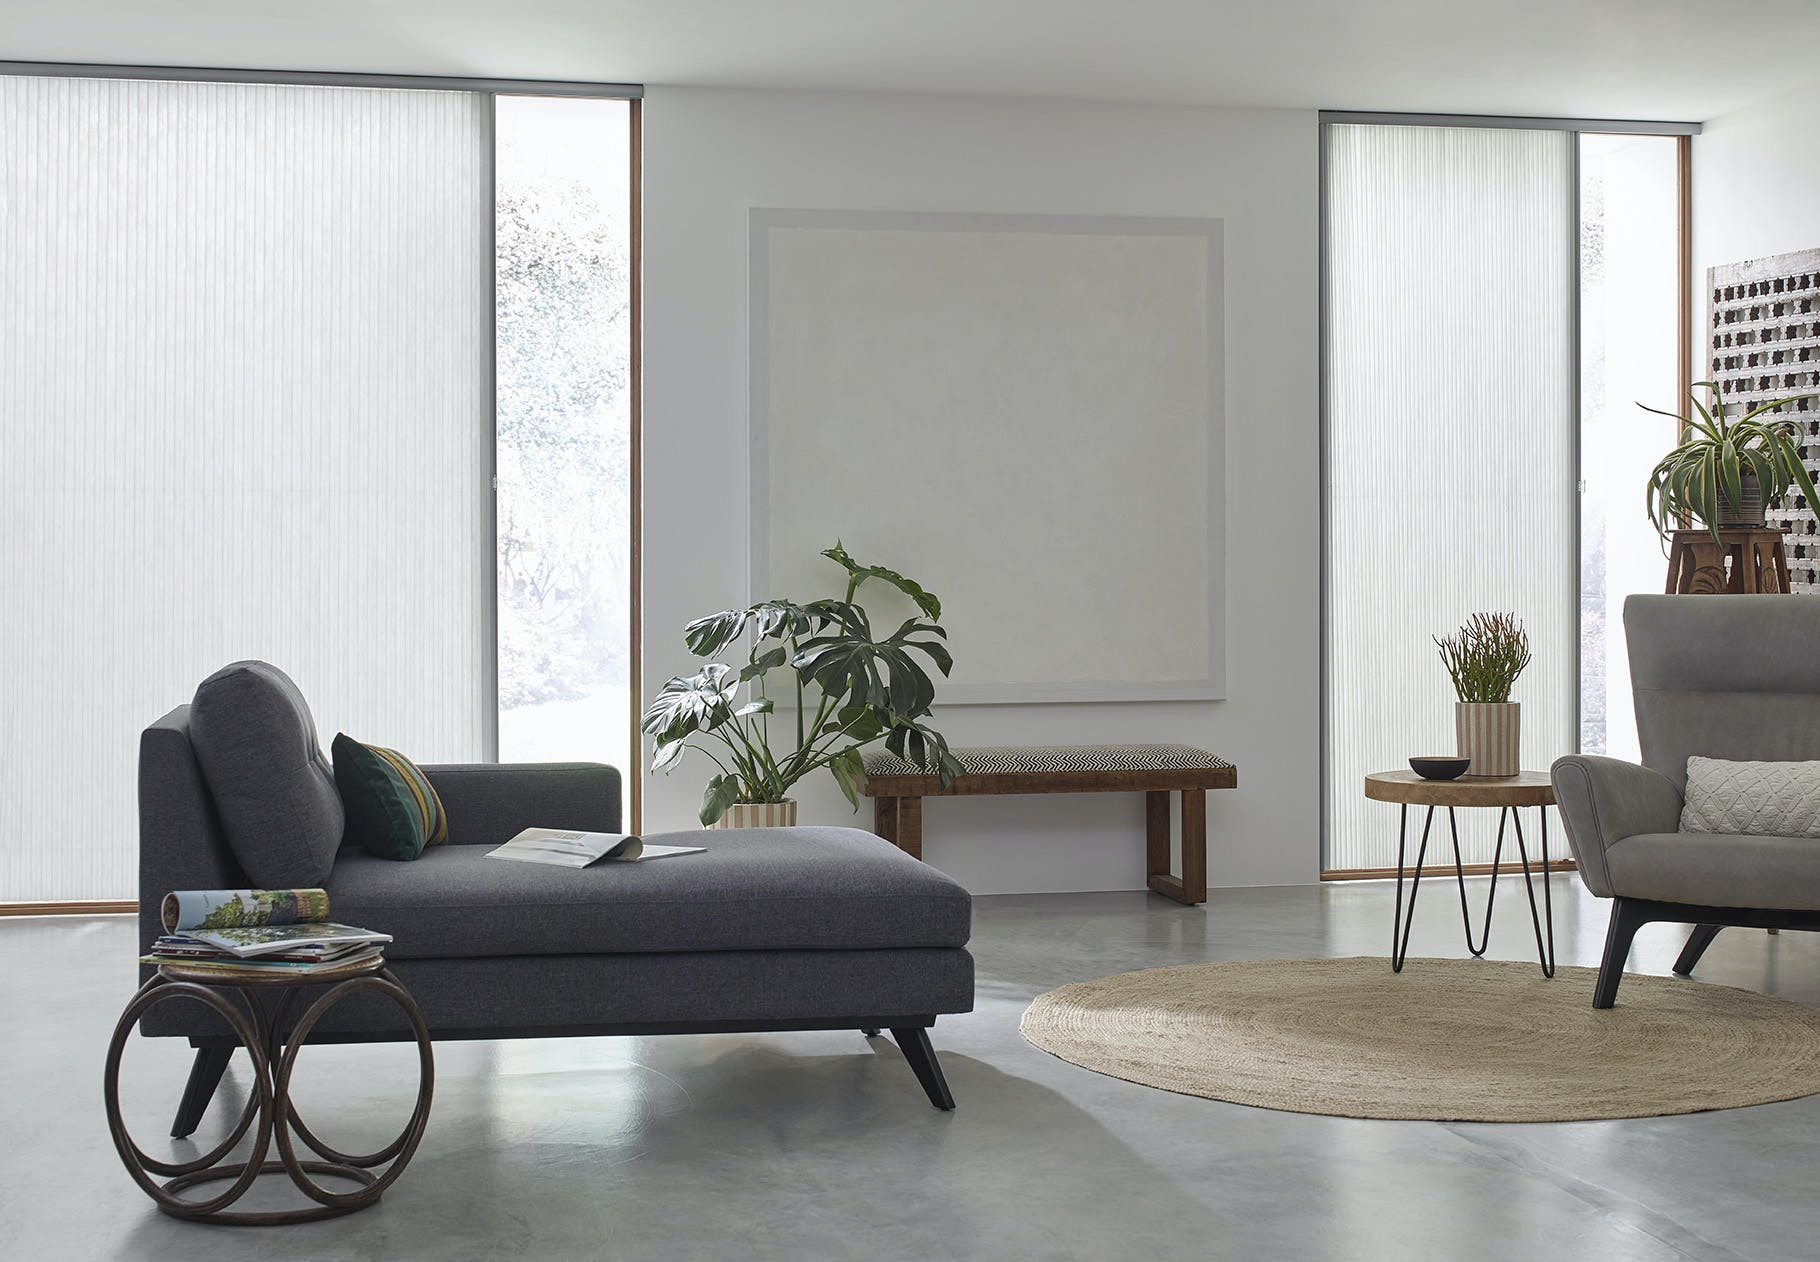 Modern, grey toned living room with two large sliding glass doors covered with white, light filtering vertical cellular shades.